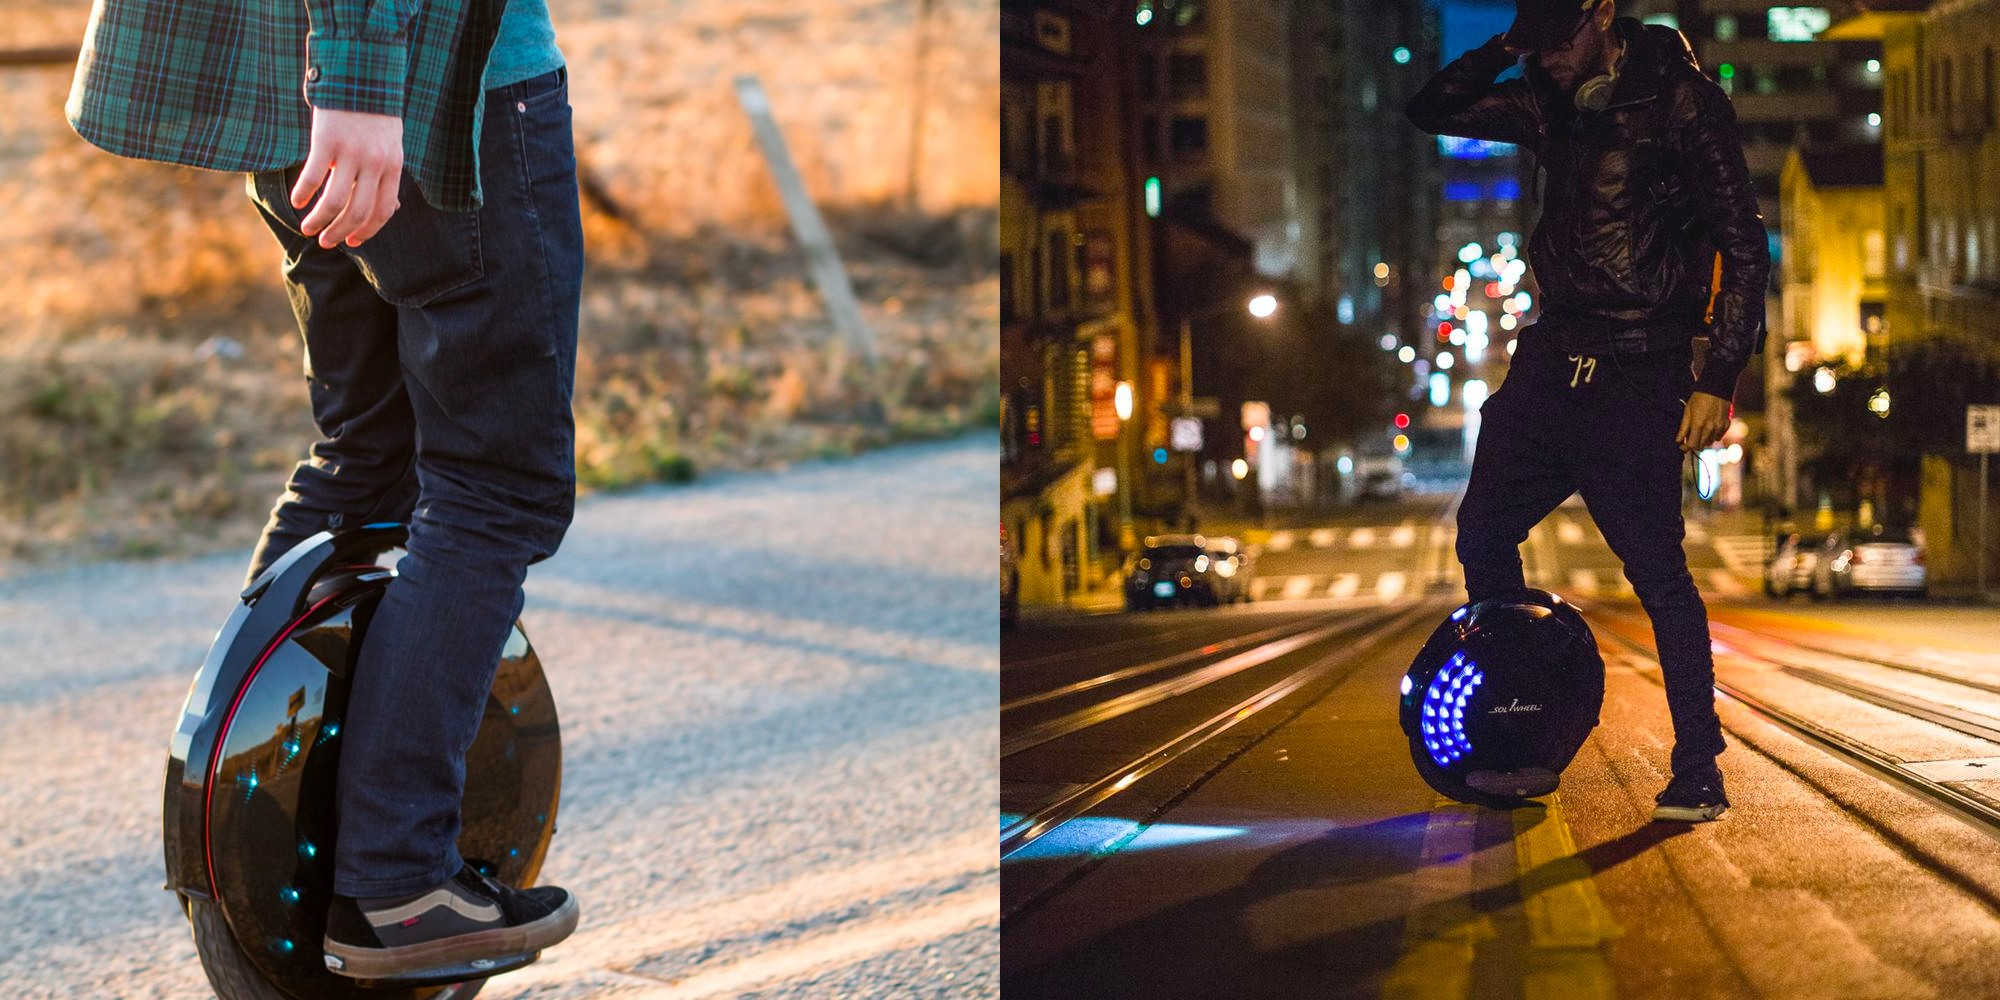 Electric unicycles: fun toys or serious last mile electric commuter vehicles?